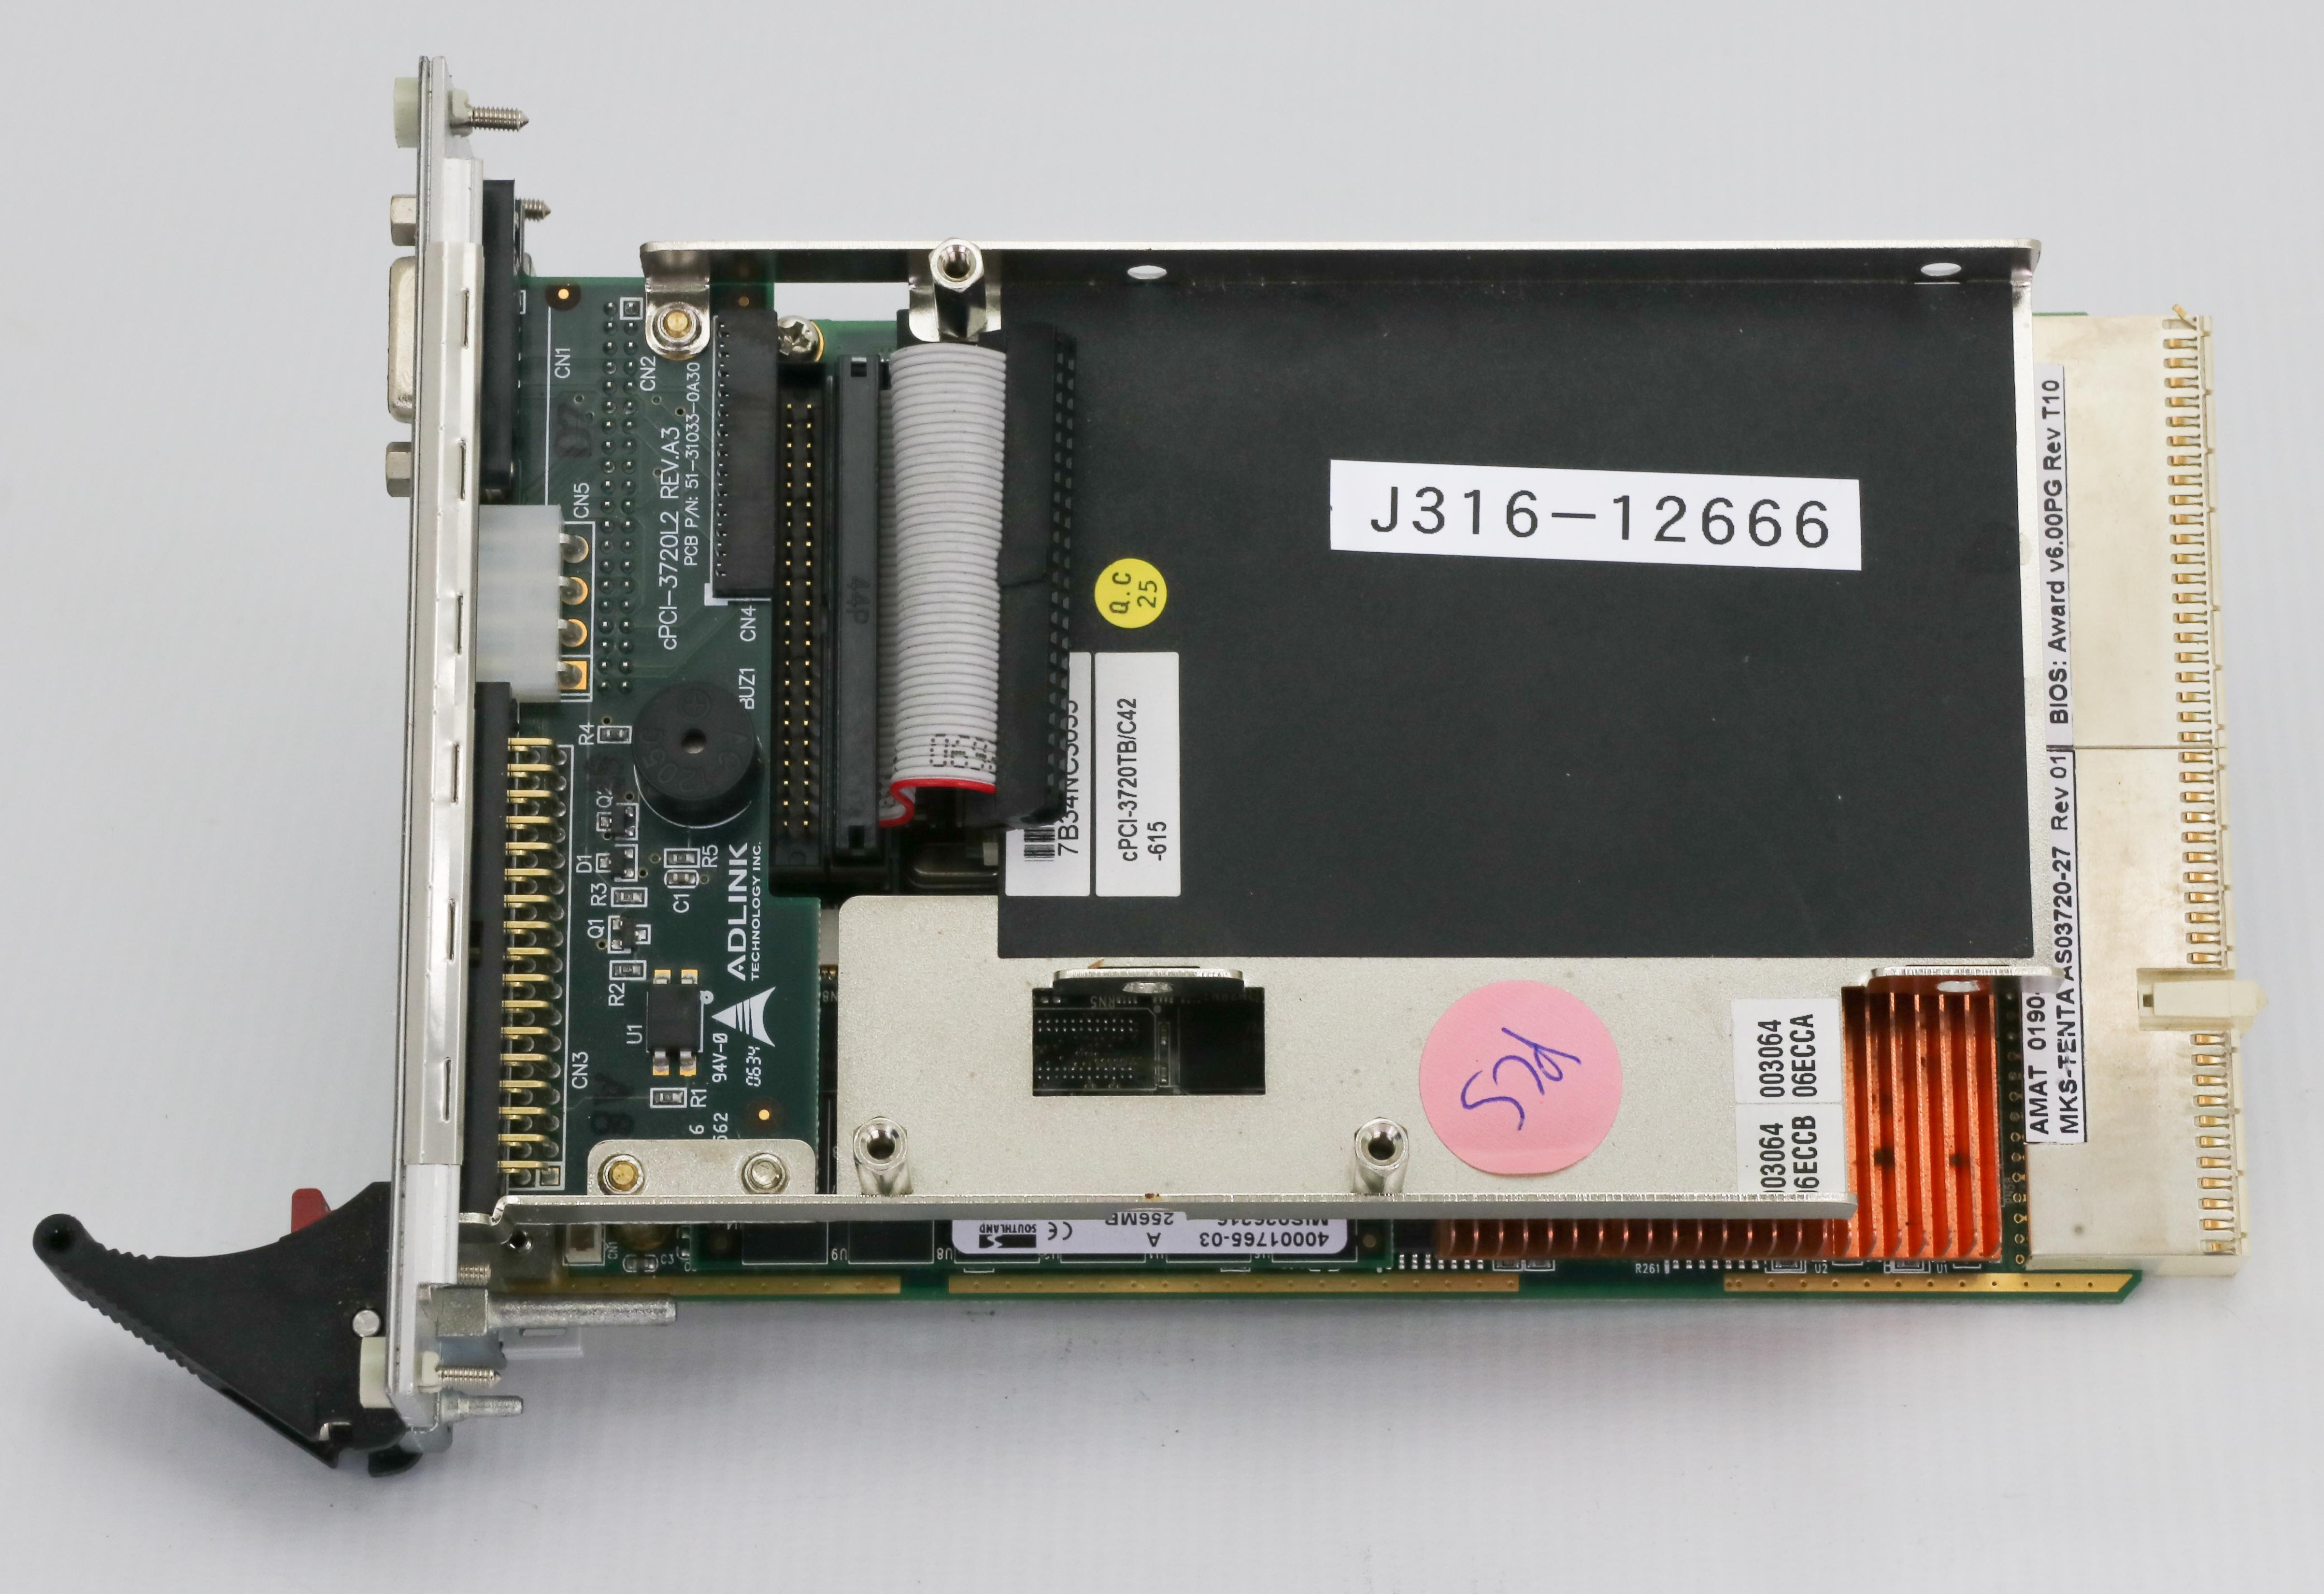 12666 APPLIED MATERIALS COMPACTPCI LOW PWR DUAL-SLOT CPU MOD